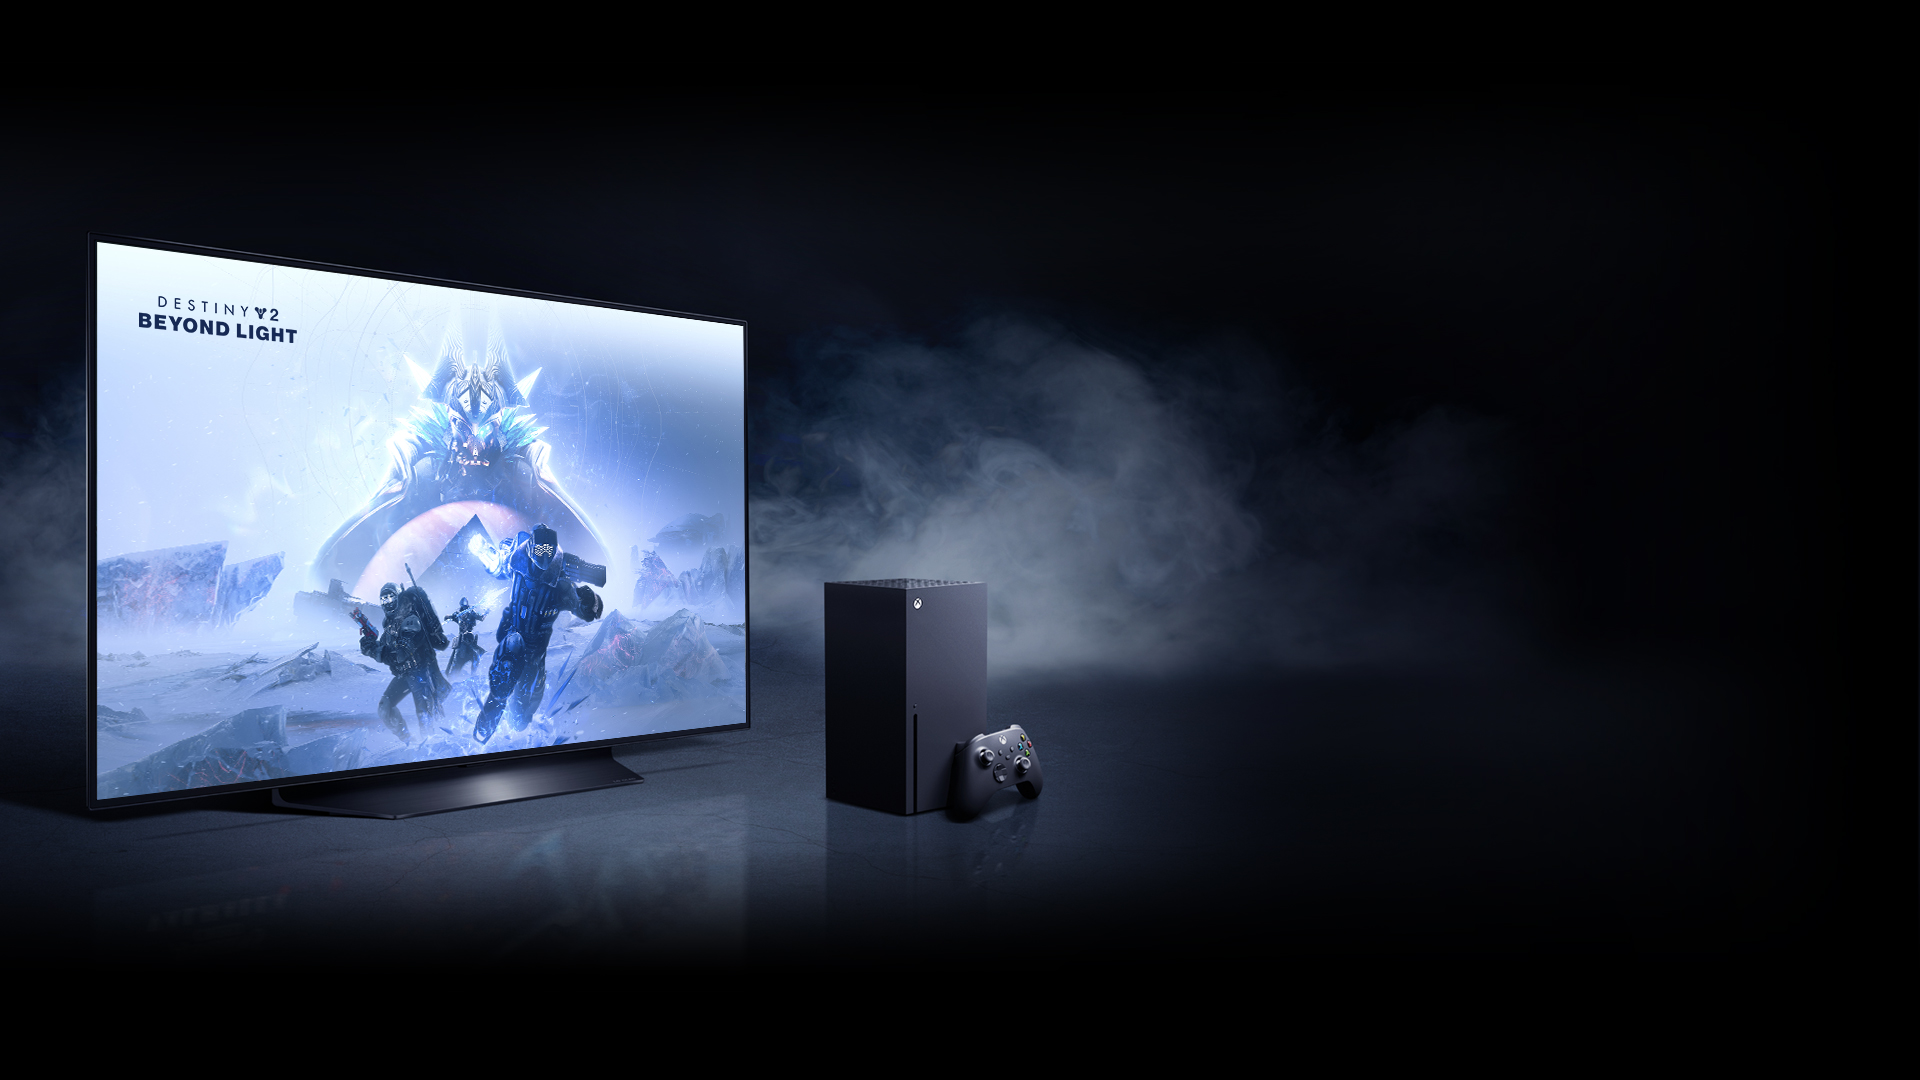 An Xbox Series X alongside an LG OLED TV with a visual from Destiny 2